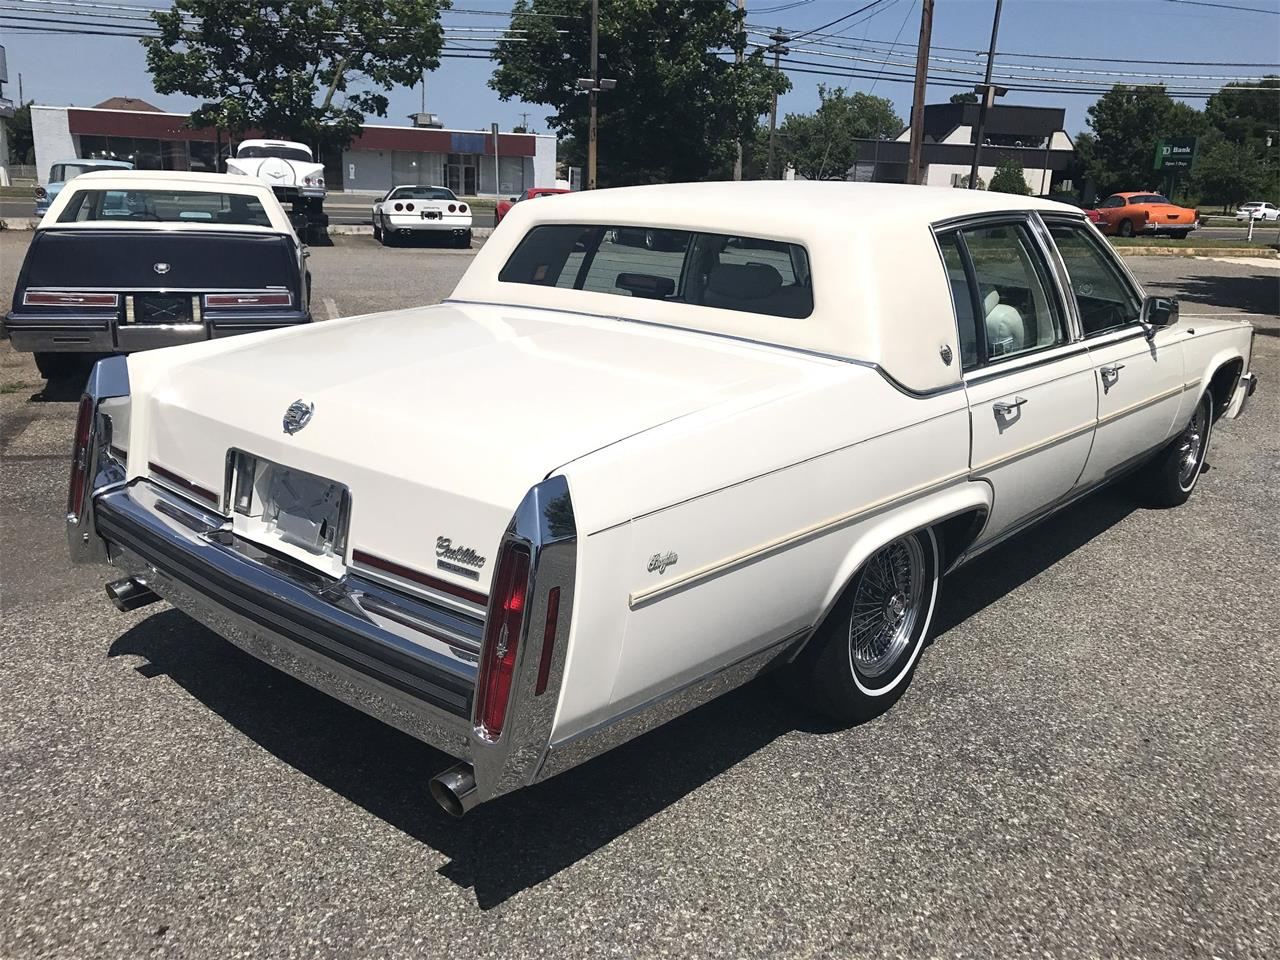 1987 Cadillac Fleetwood Brougham for sale in Stratford, NJ – photo 4